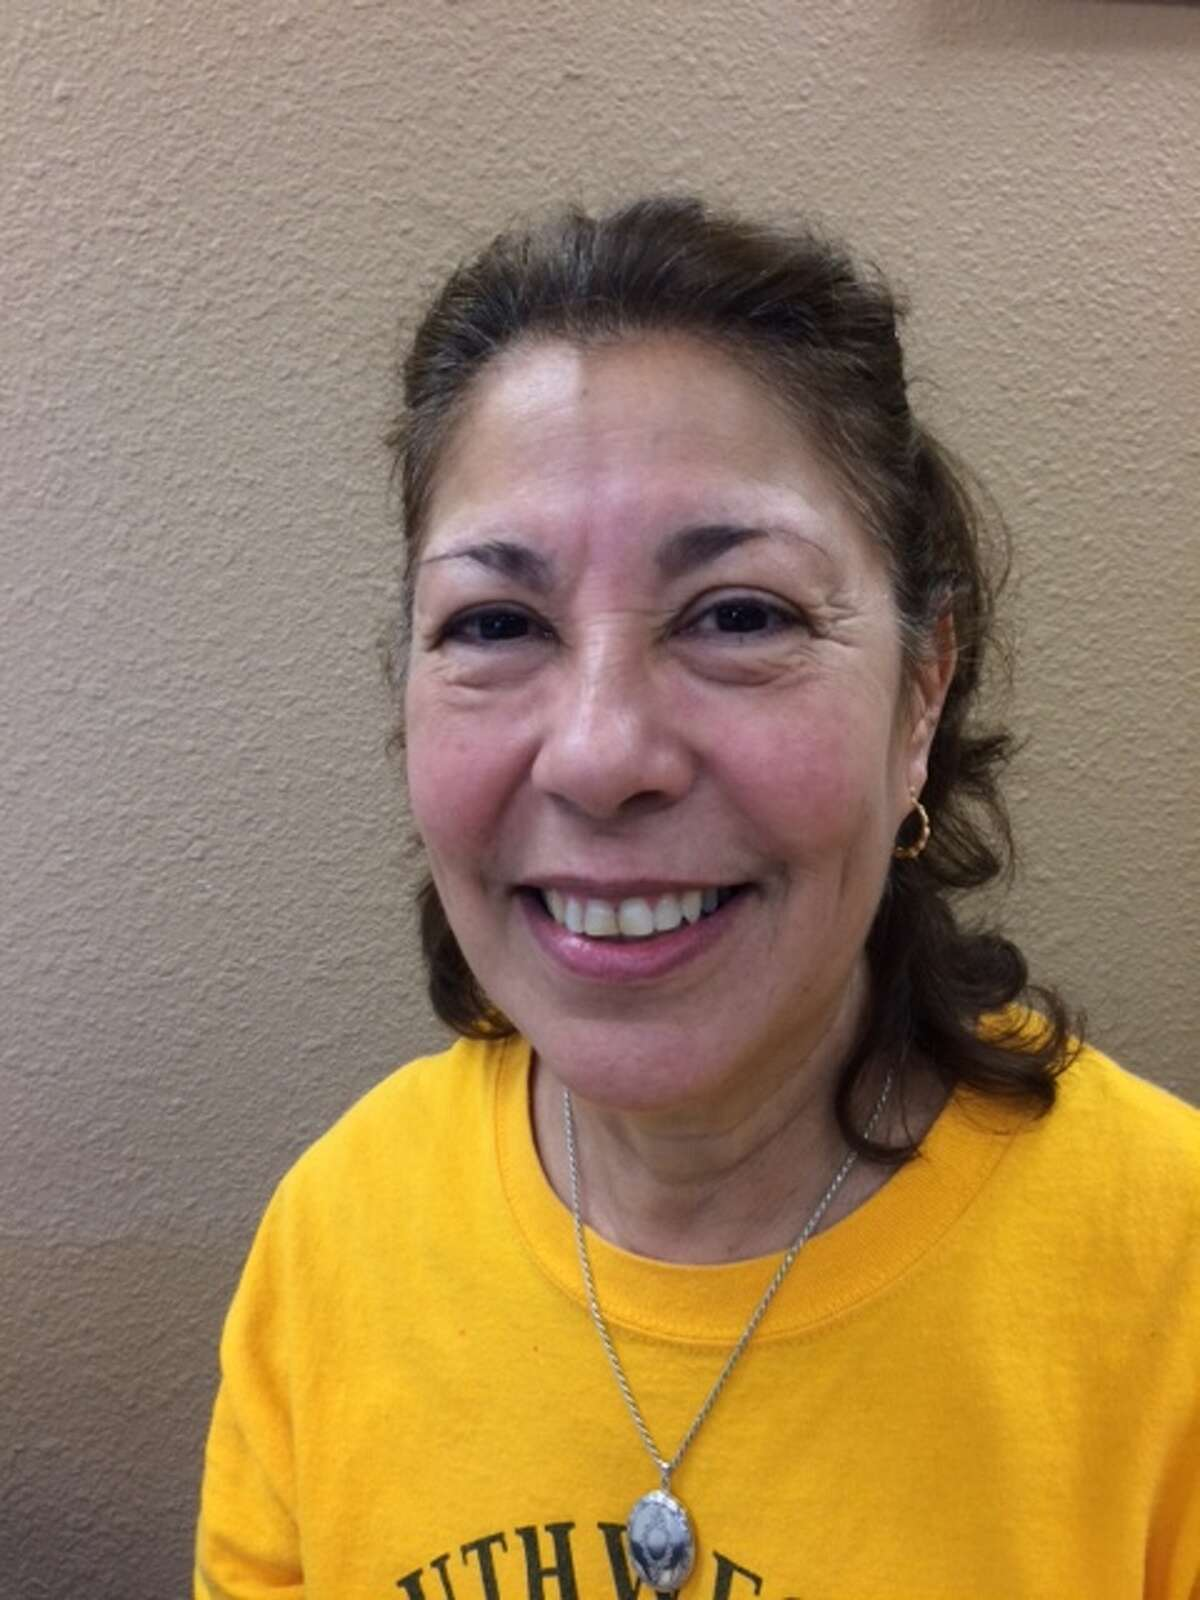 For the past three years, retiree Angelina Guevara, 65, has volunteered at the Daughters of Charity Services to help neighbors from her South Side community.